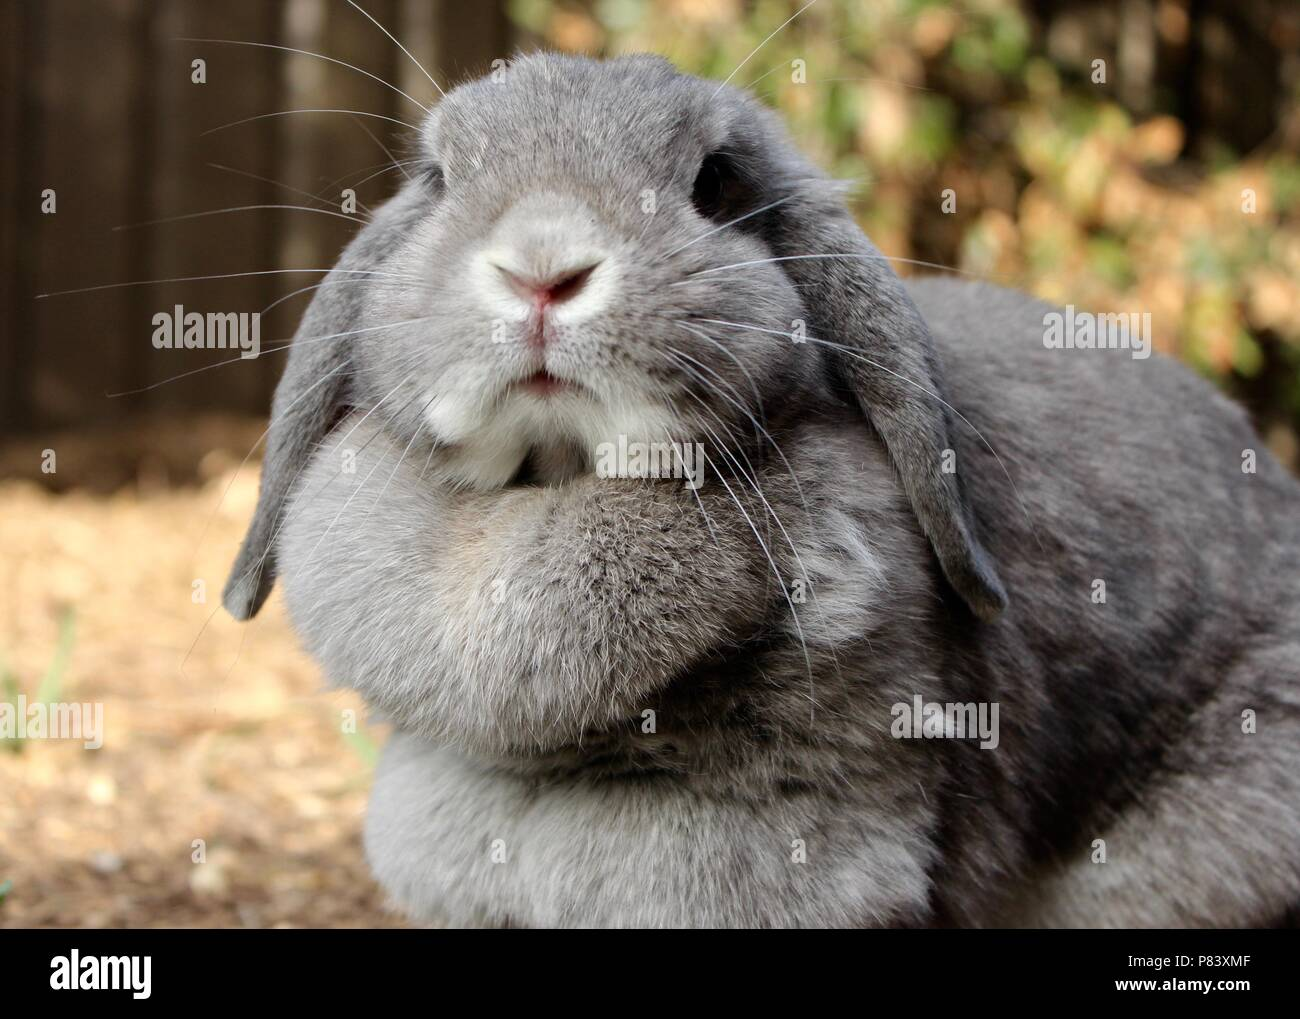 Close up of grey rabbit with floppy ears - Stock Image